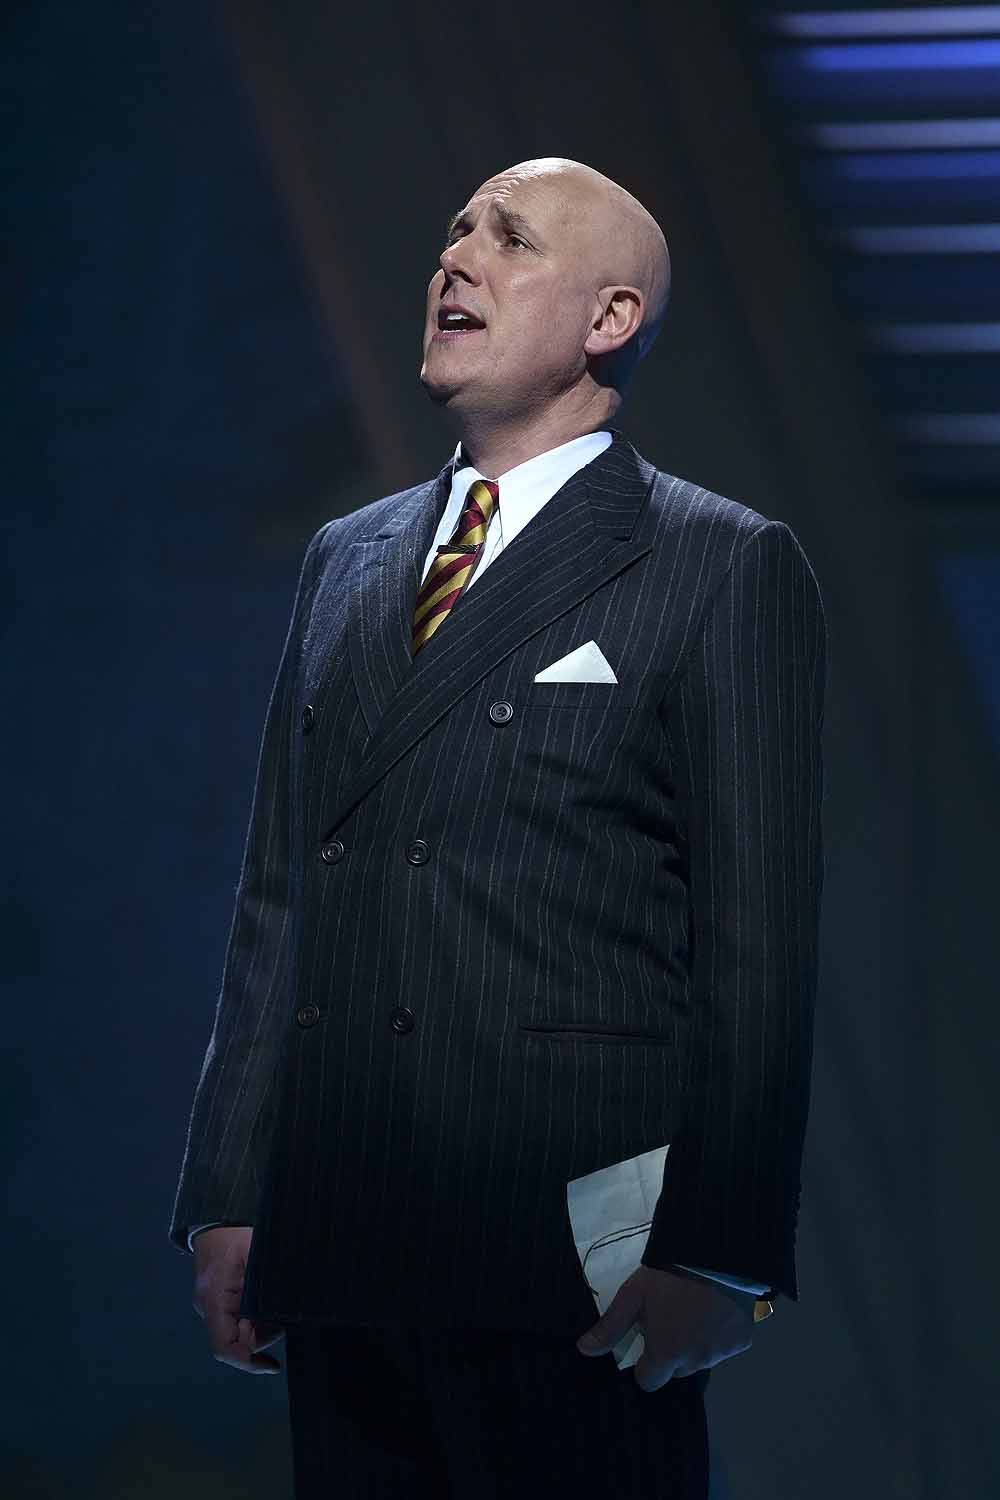 Alex Bourne as Daddy Warbucks in Annie The Musical which plays Wales Millennium Centre from August 19-31, 2019. Photo Paul Coltas